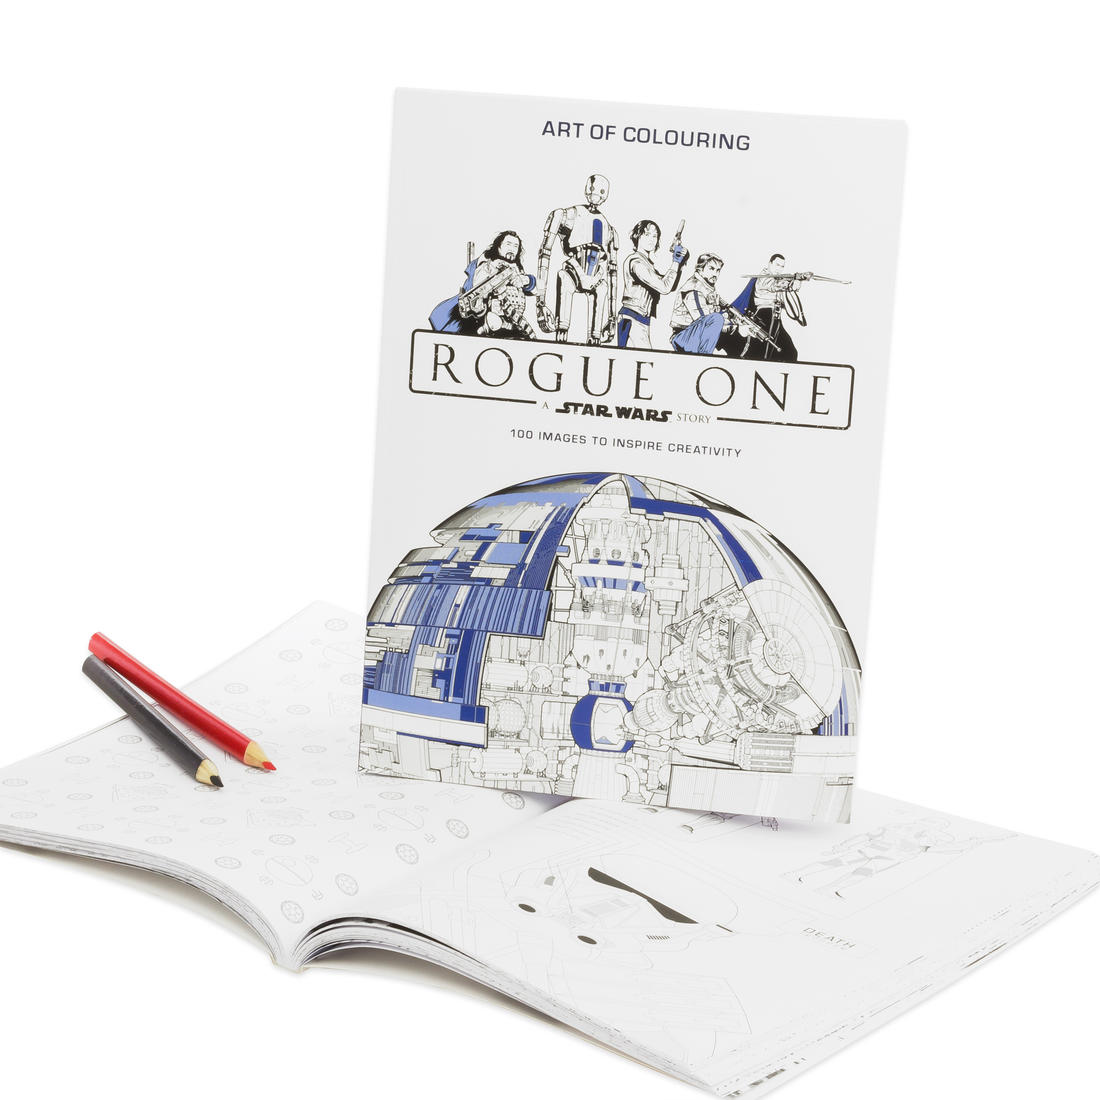 Star Wars Rogue One Colouring Book | getDigital